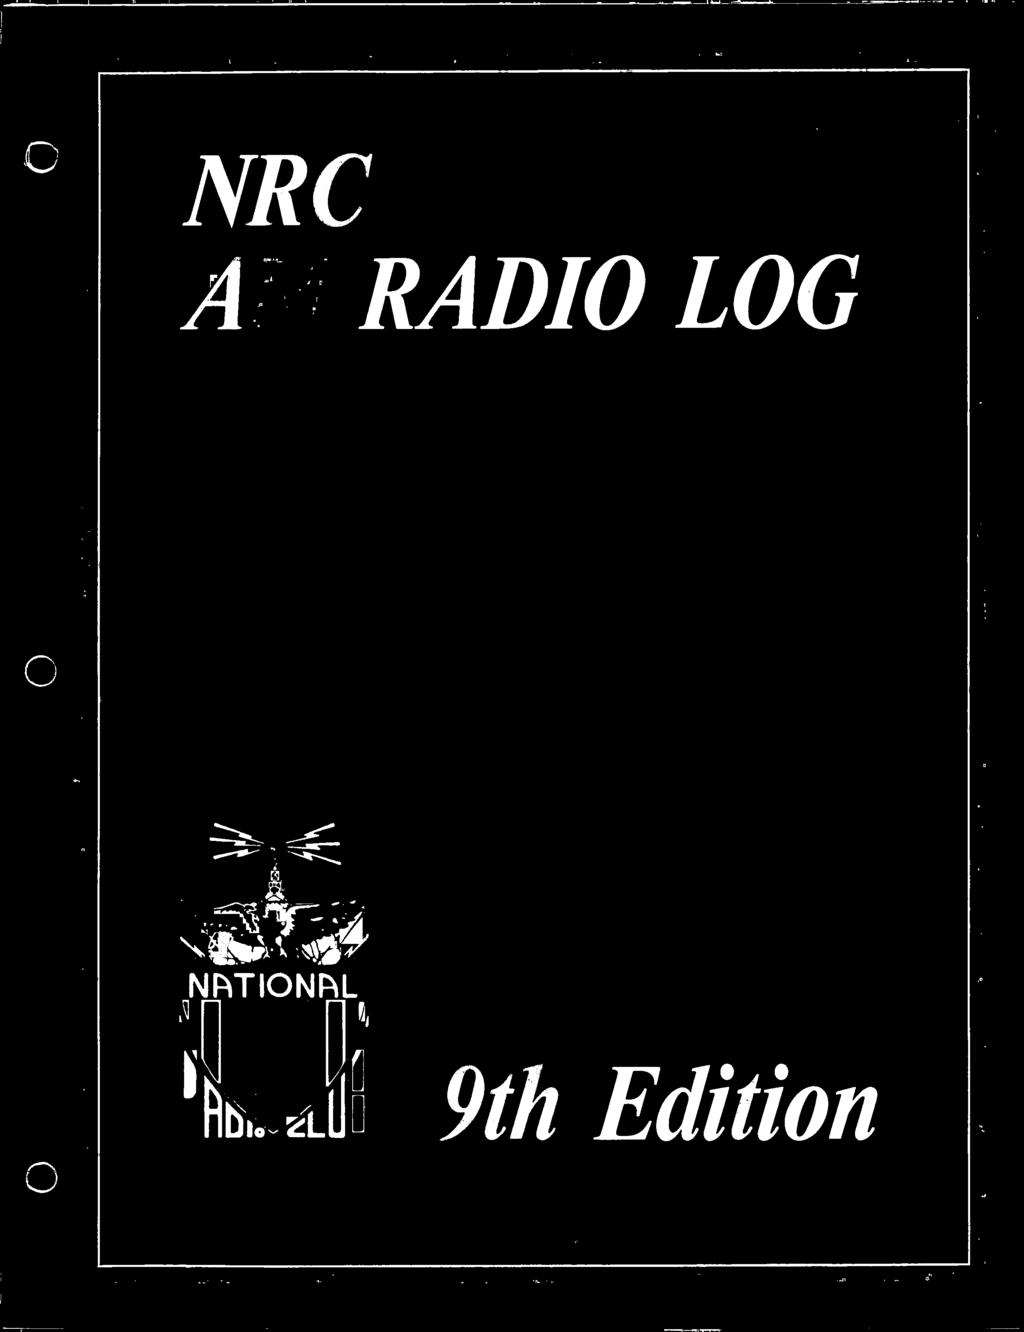 NRC AM RADIO LOG  ,e-